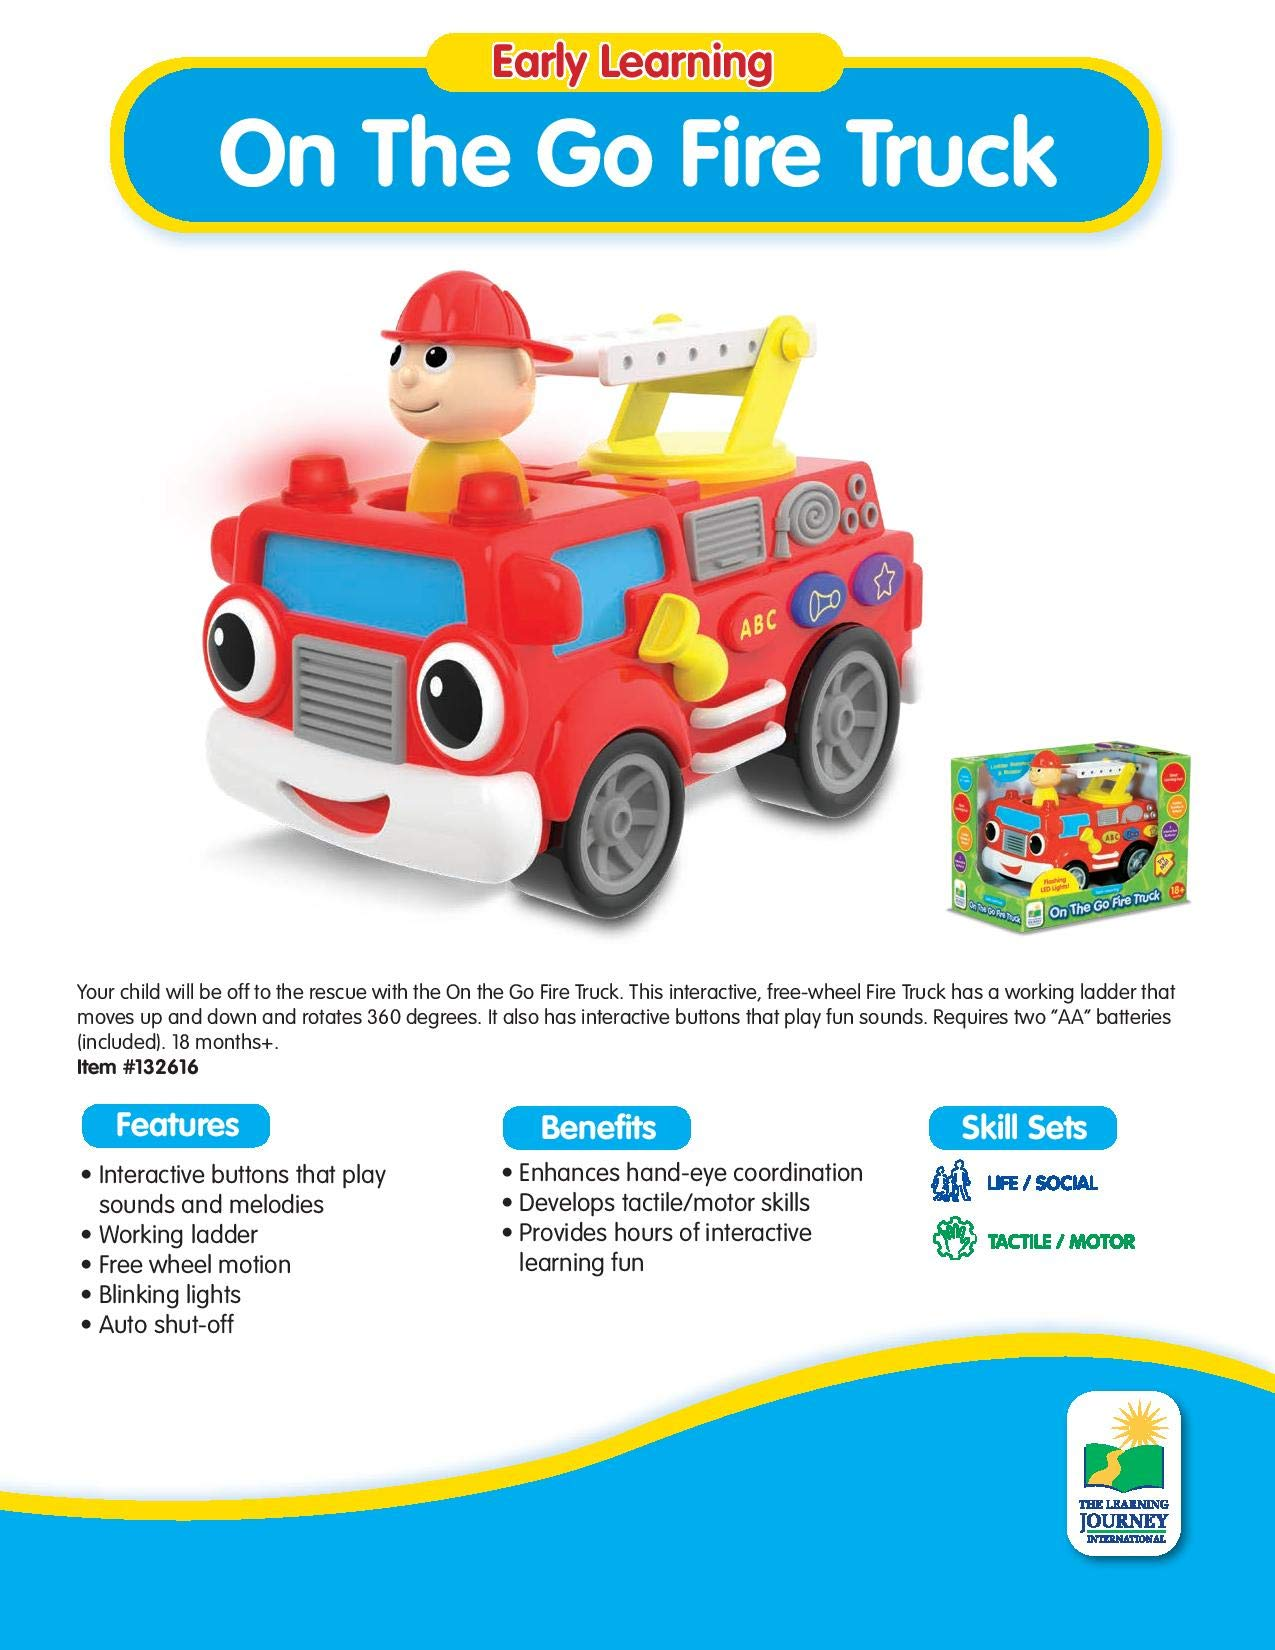 The Learning Journey Early Learning - On The Go Fire Truck - Baby and Toddler Toys & Gifts for Boys & Girls Ages 18 months and Up - Award Winning Toy